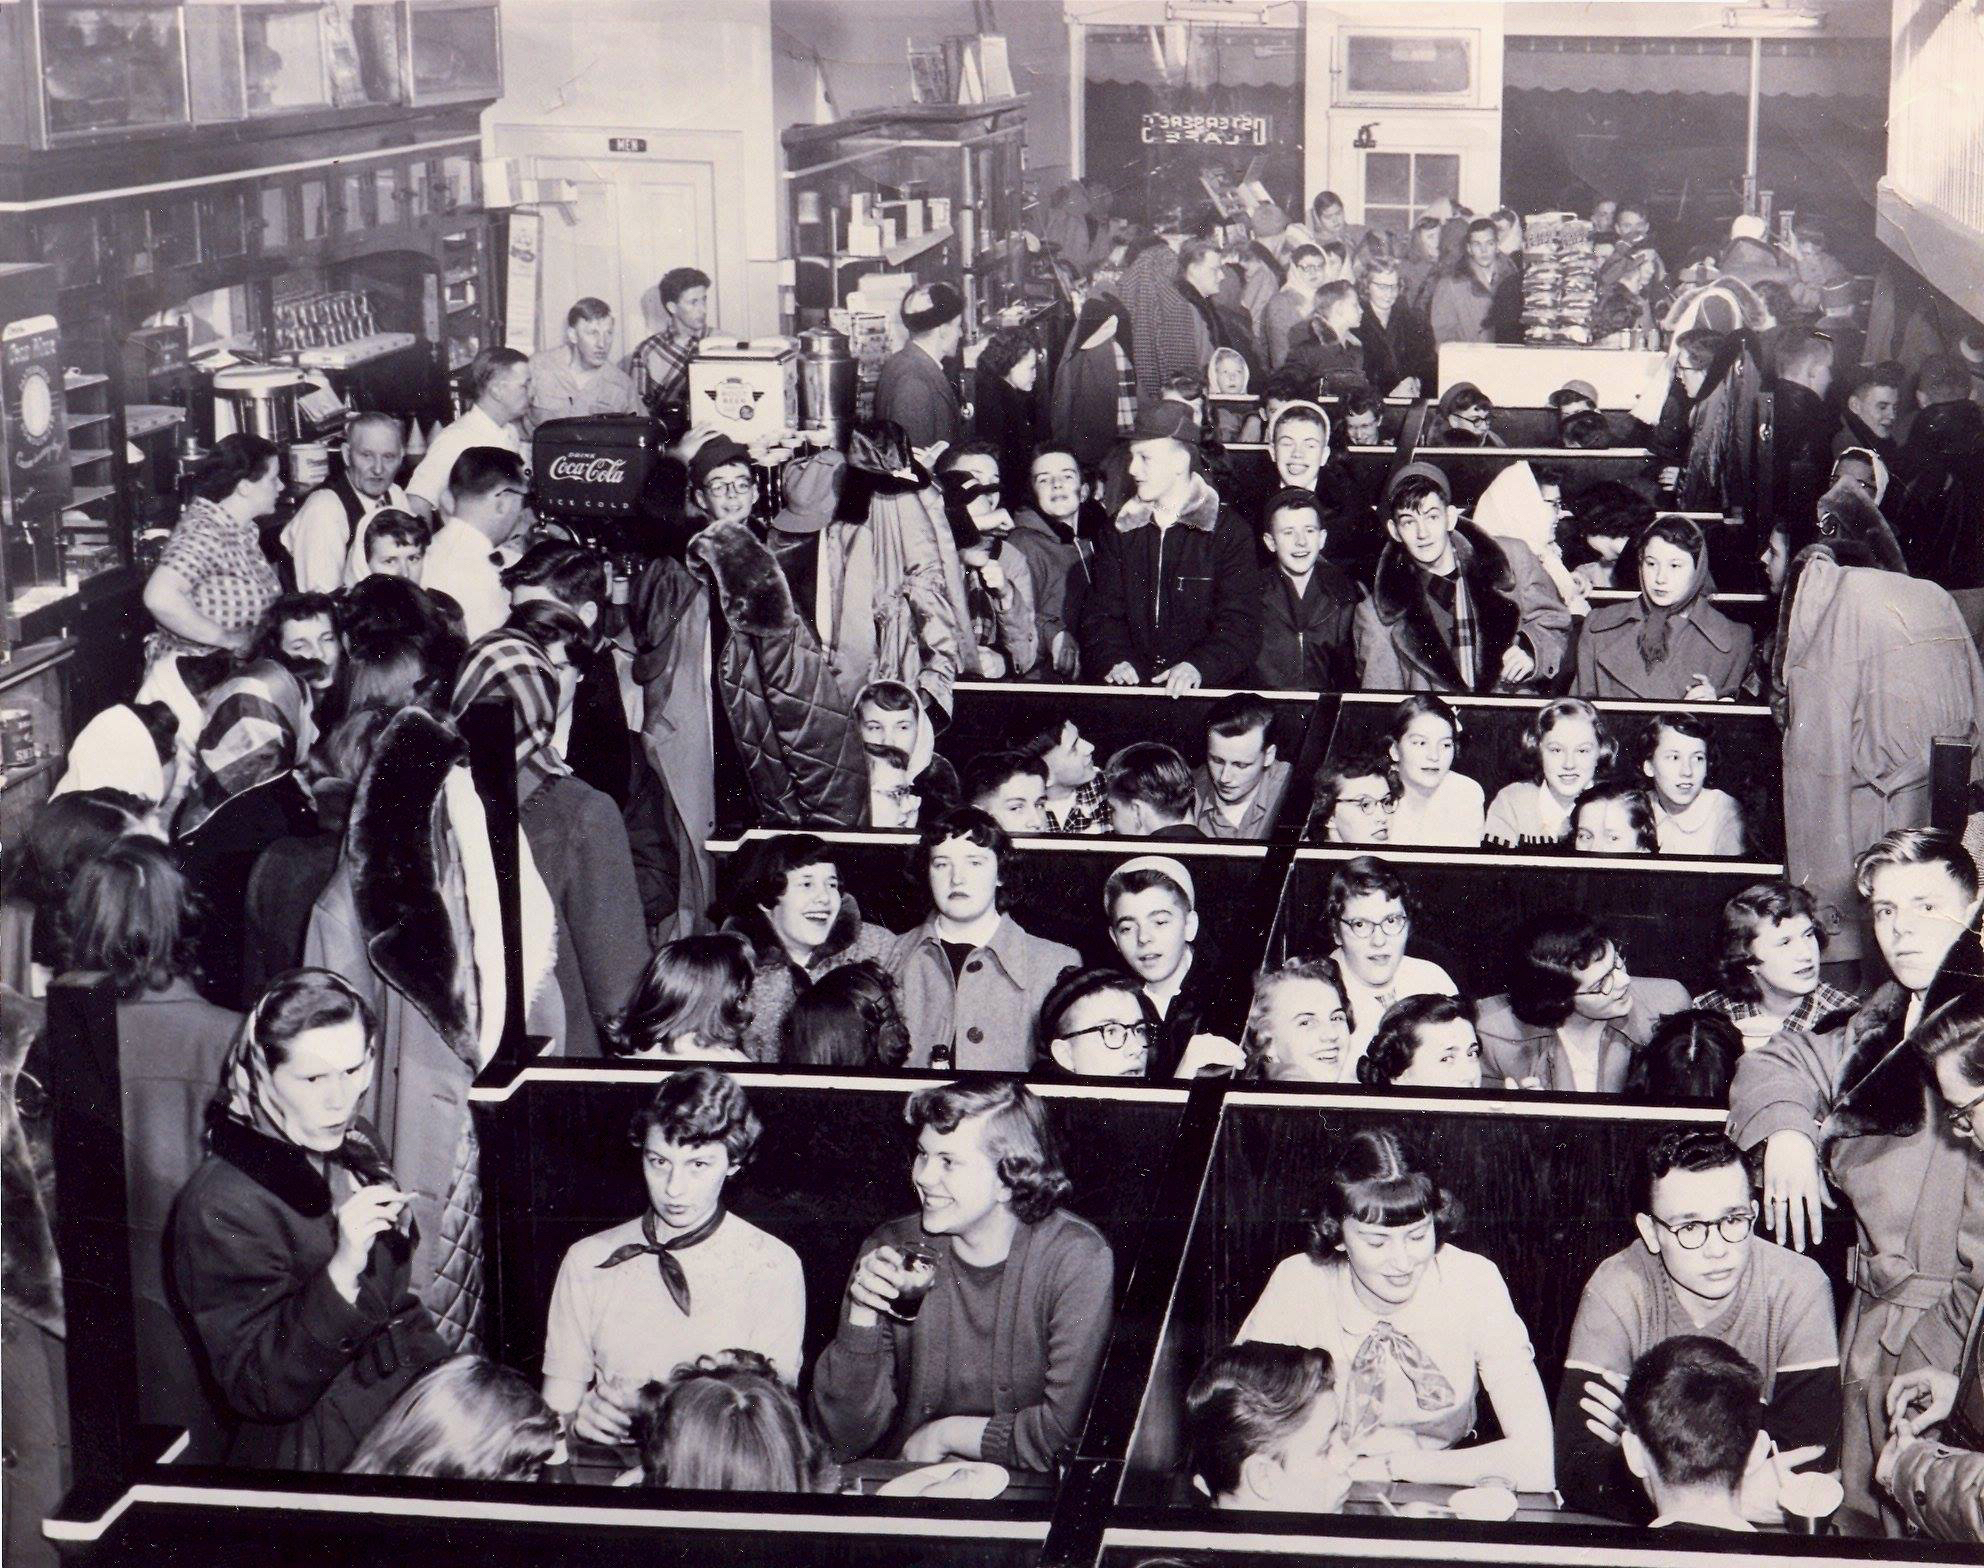 Interior of Osterberg's after a football game. Photo: Douglas County Historical Society